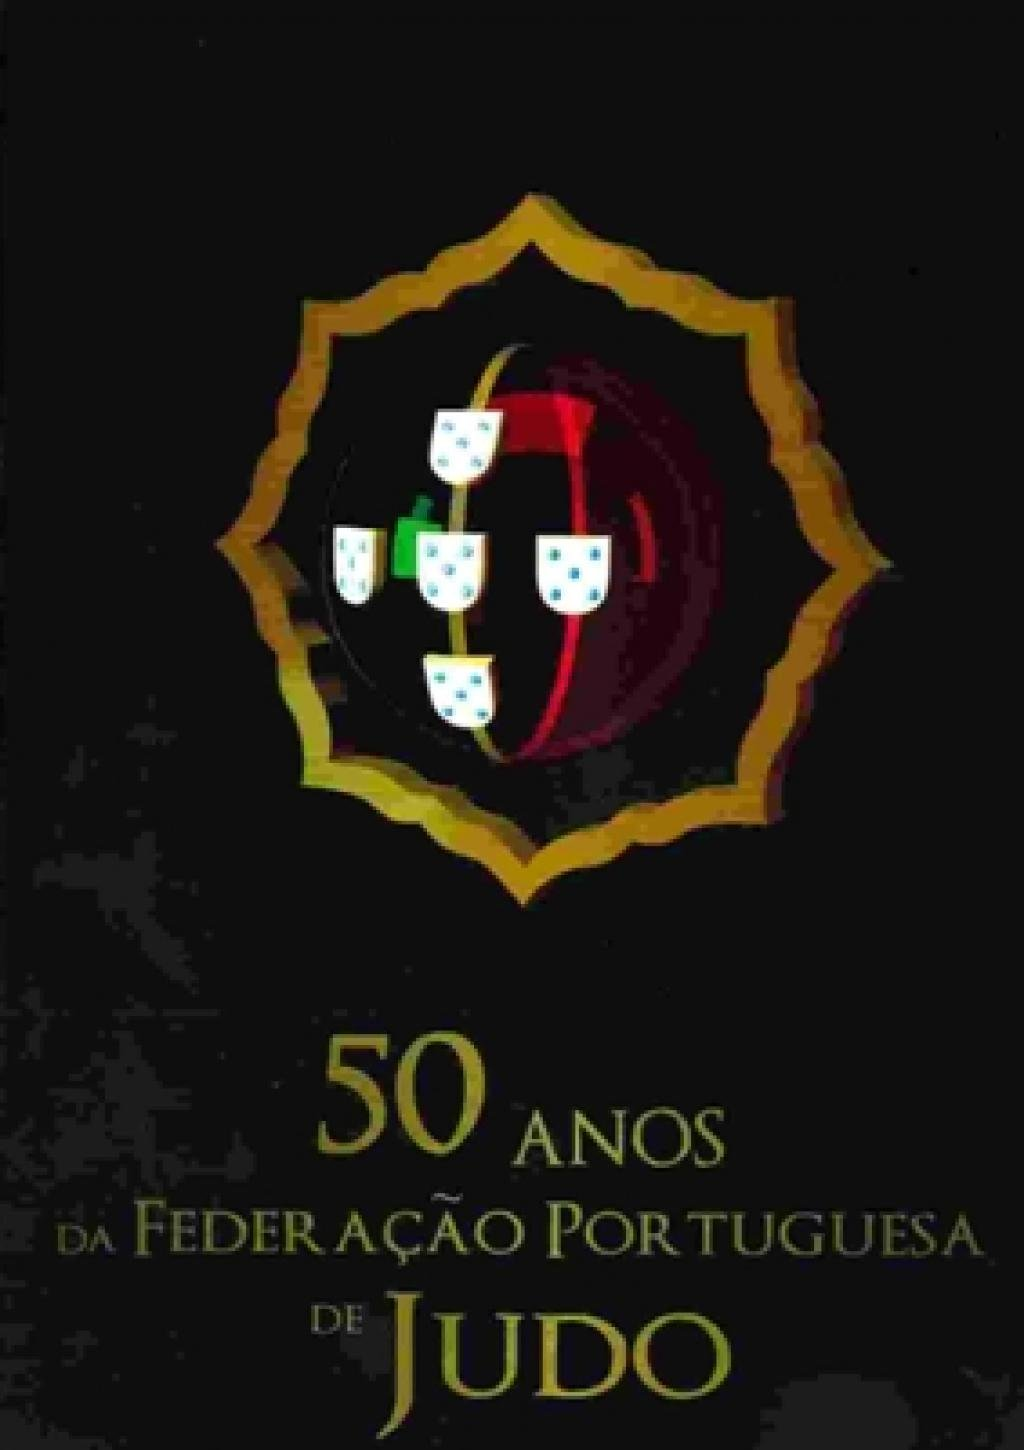 Book of 50 Years Portuguese Judo Federation released